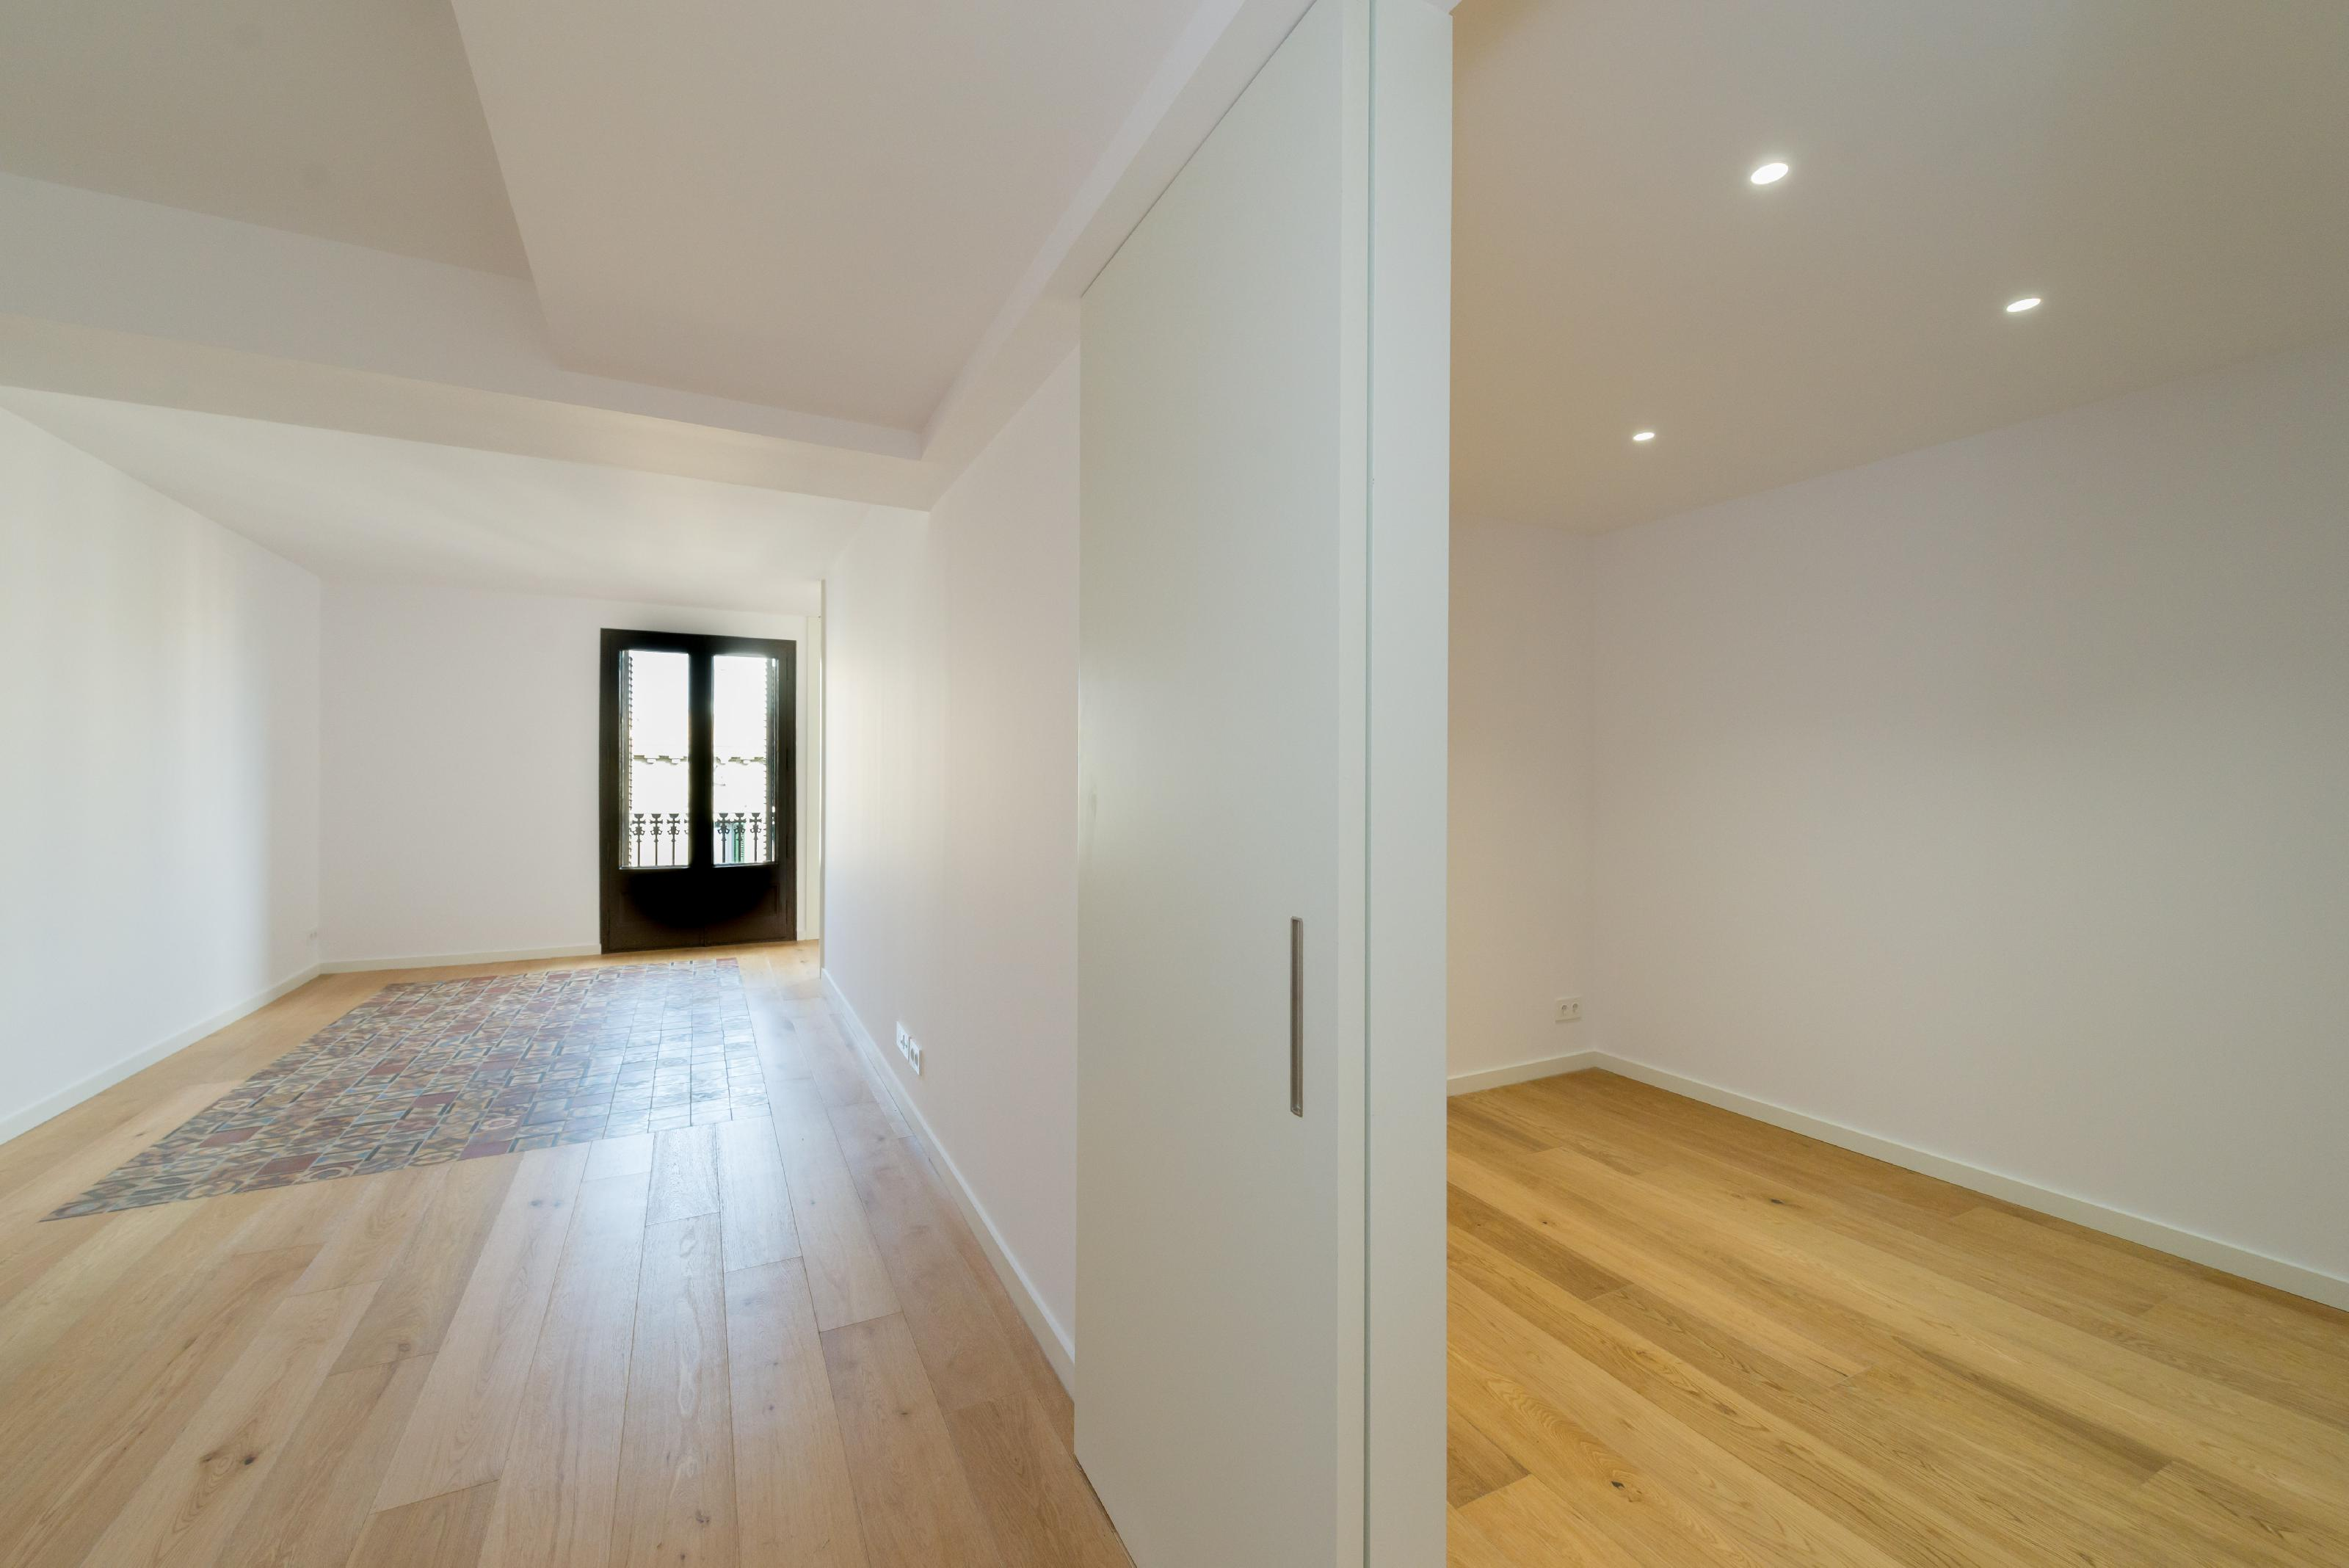 236358 Flat for sale in Eixample, Old Left Eixample 3